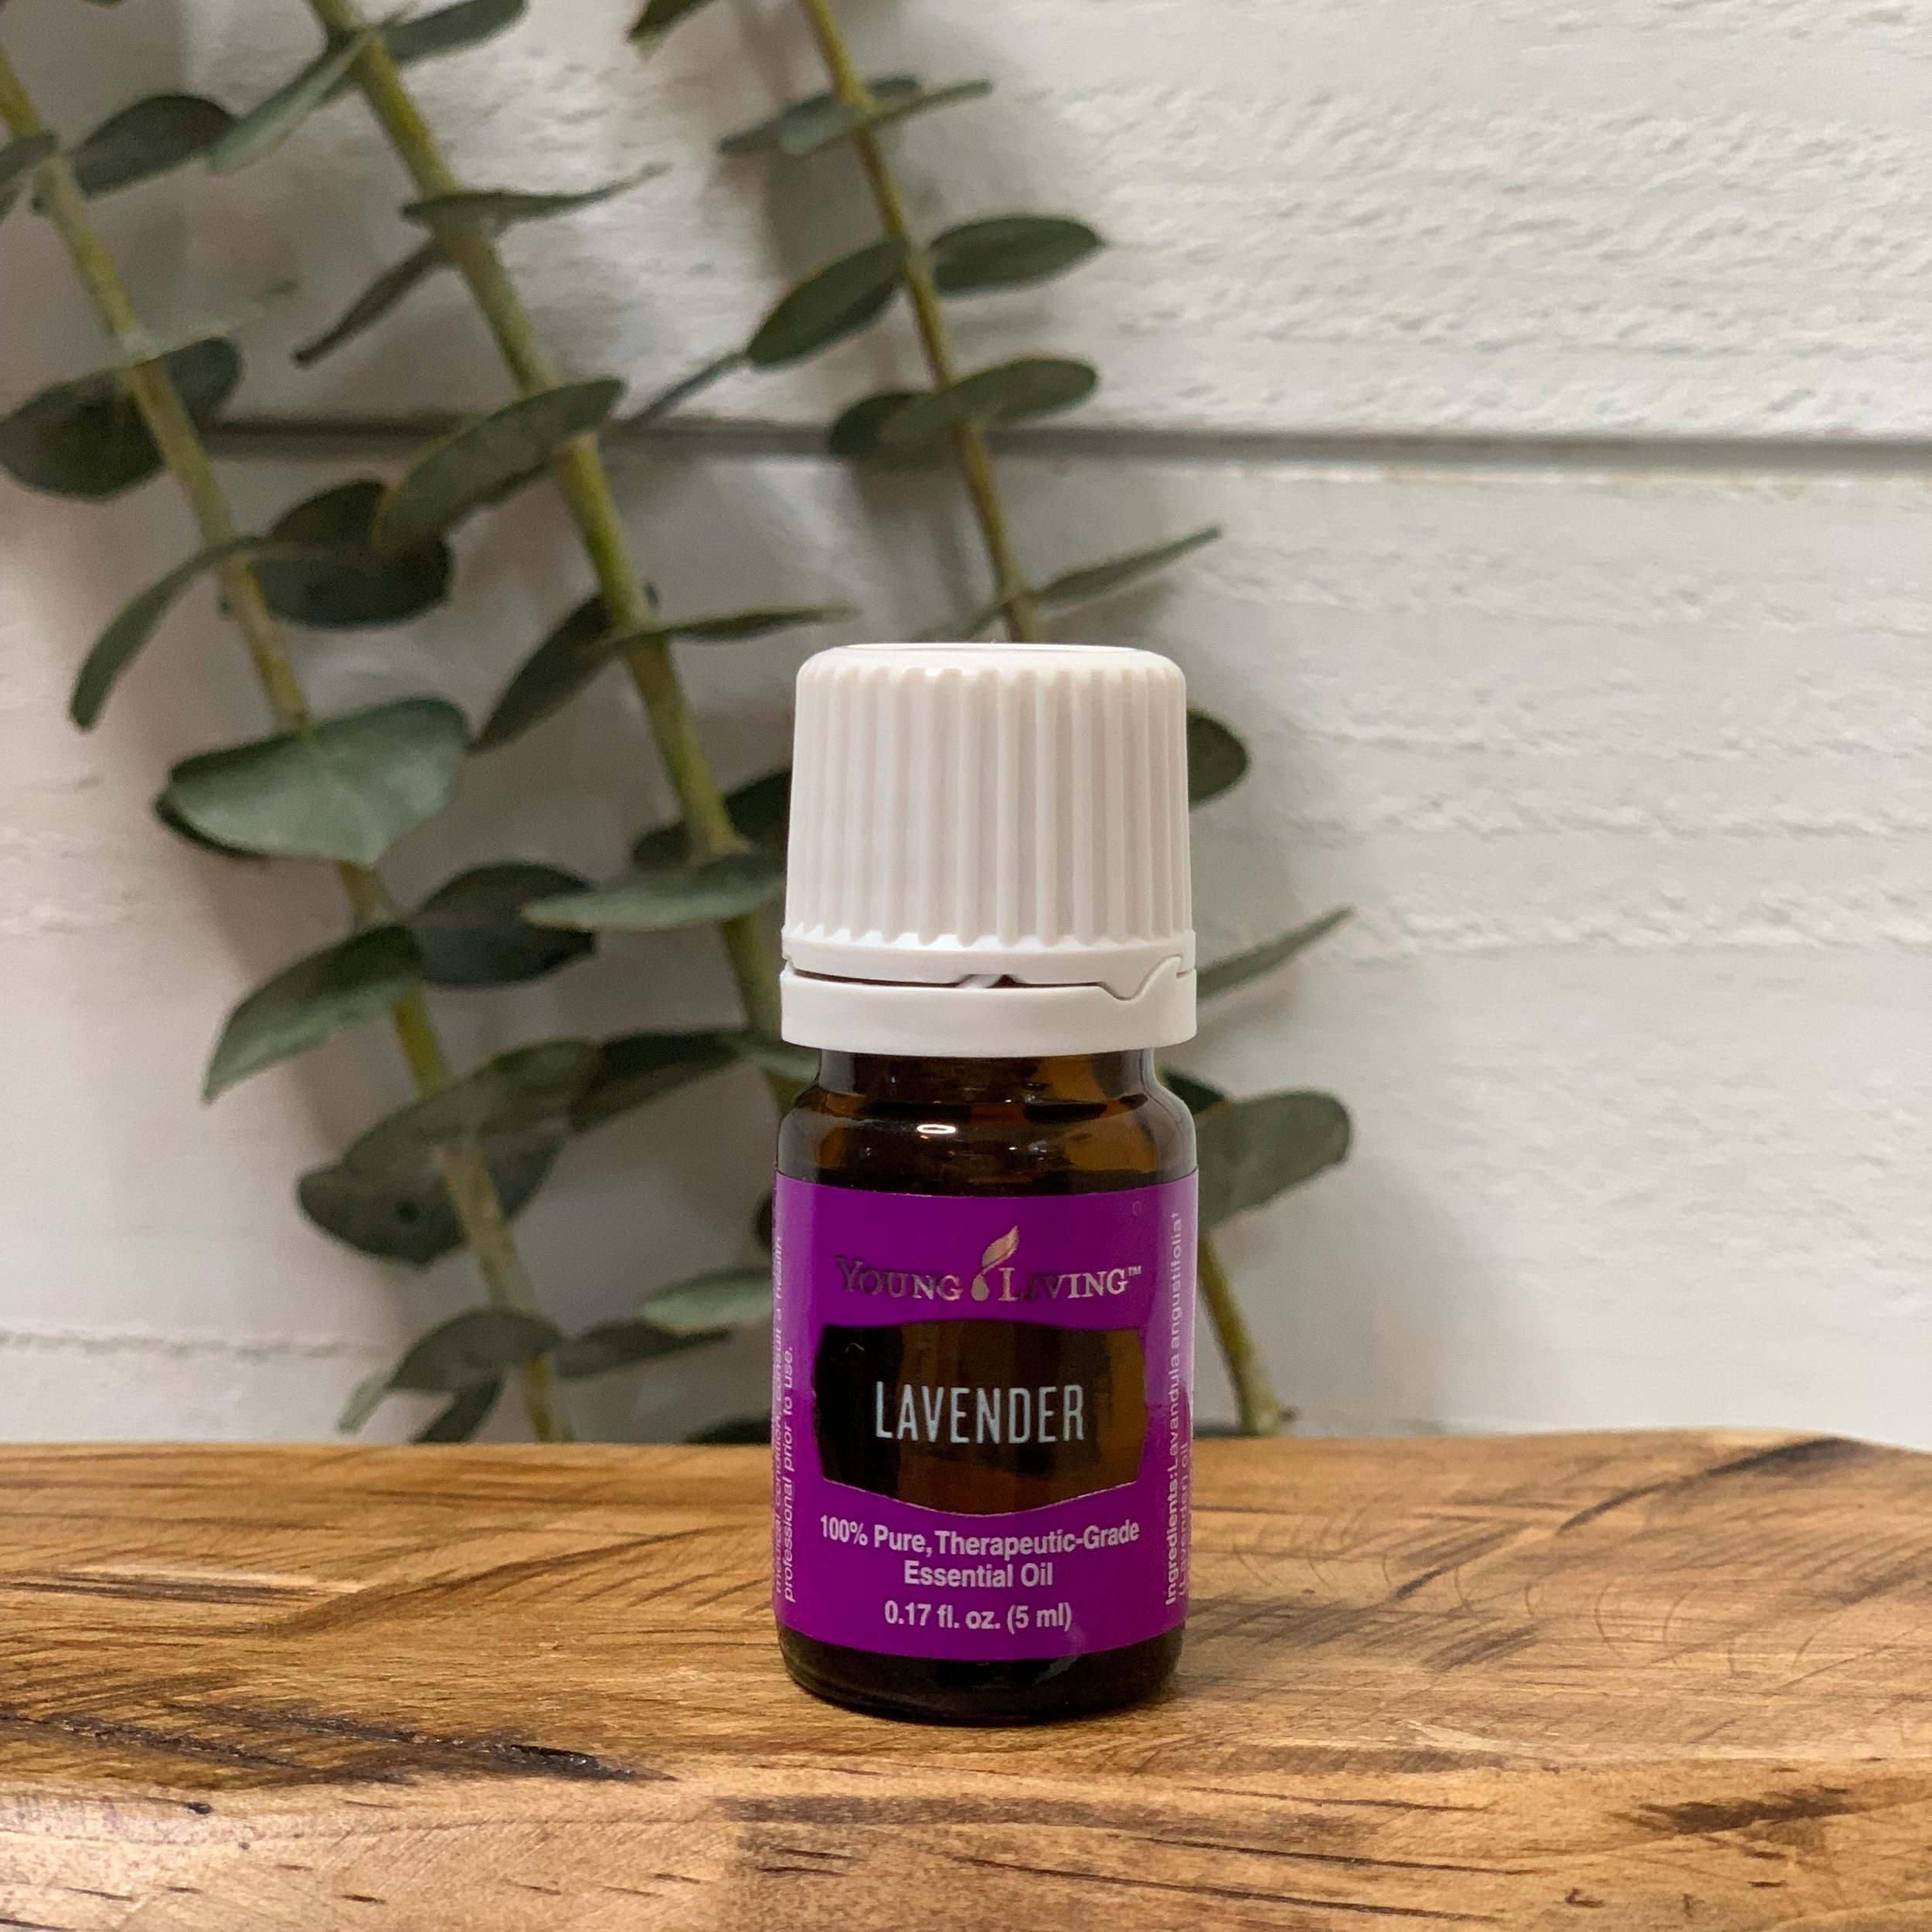 """lavender - We like to call this one the """"Swiss Army Knife of oils"""" because lavender can support all the things! It supports sleep, helps heal cuts and burns, and we like adding it to our mascara to help with eyelash growth—to name a few!"""